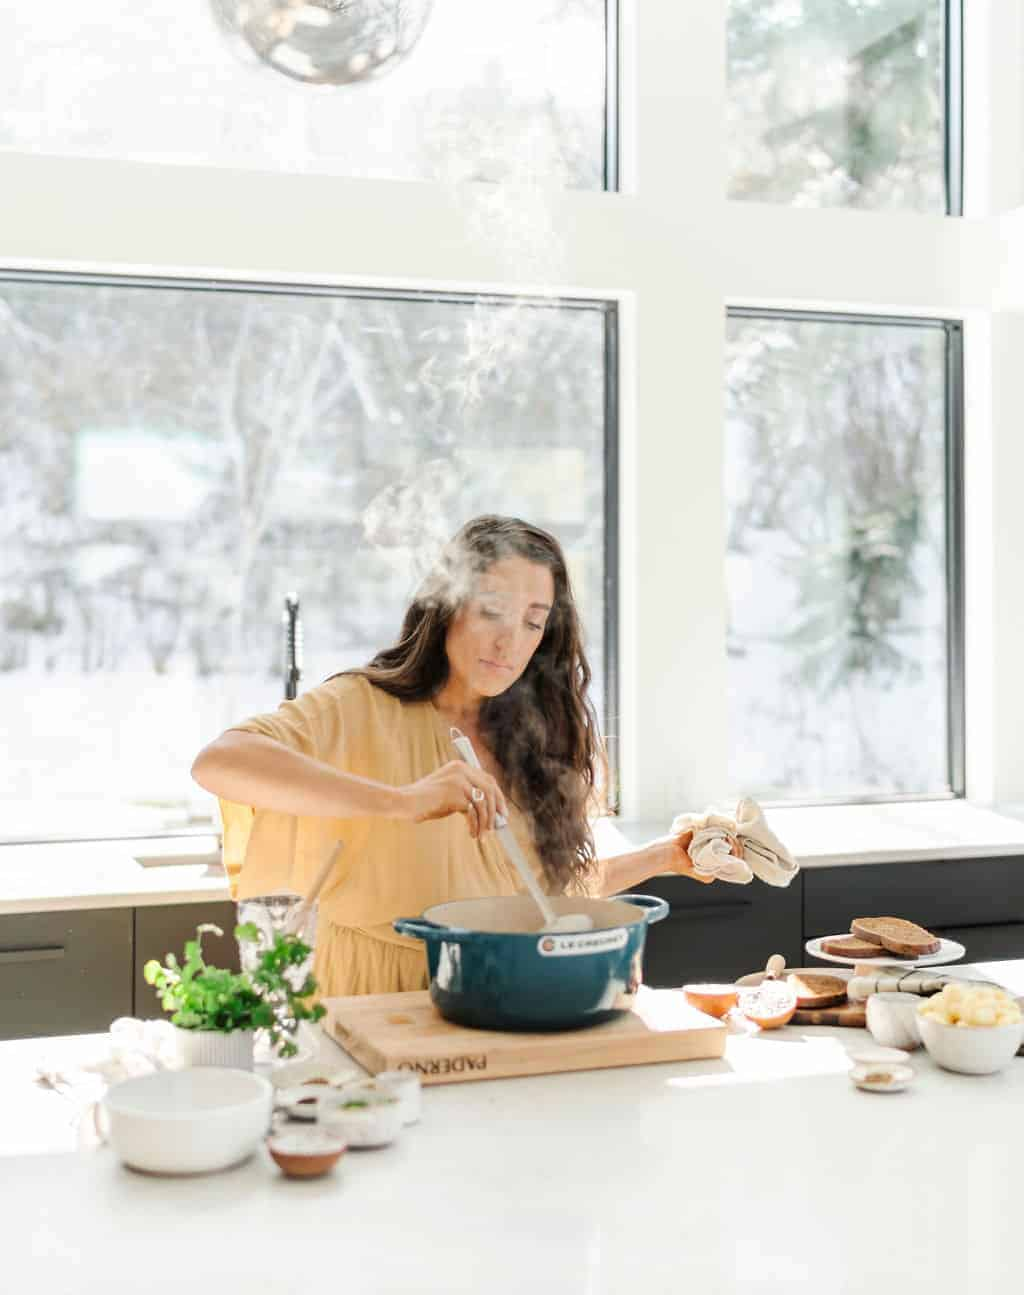 Maria stirring a pot of hot food at a white countertop with a beautiful winter backdrop